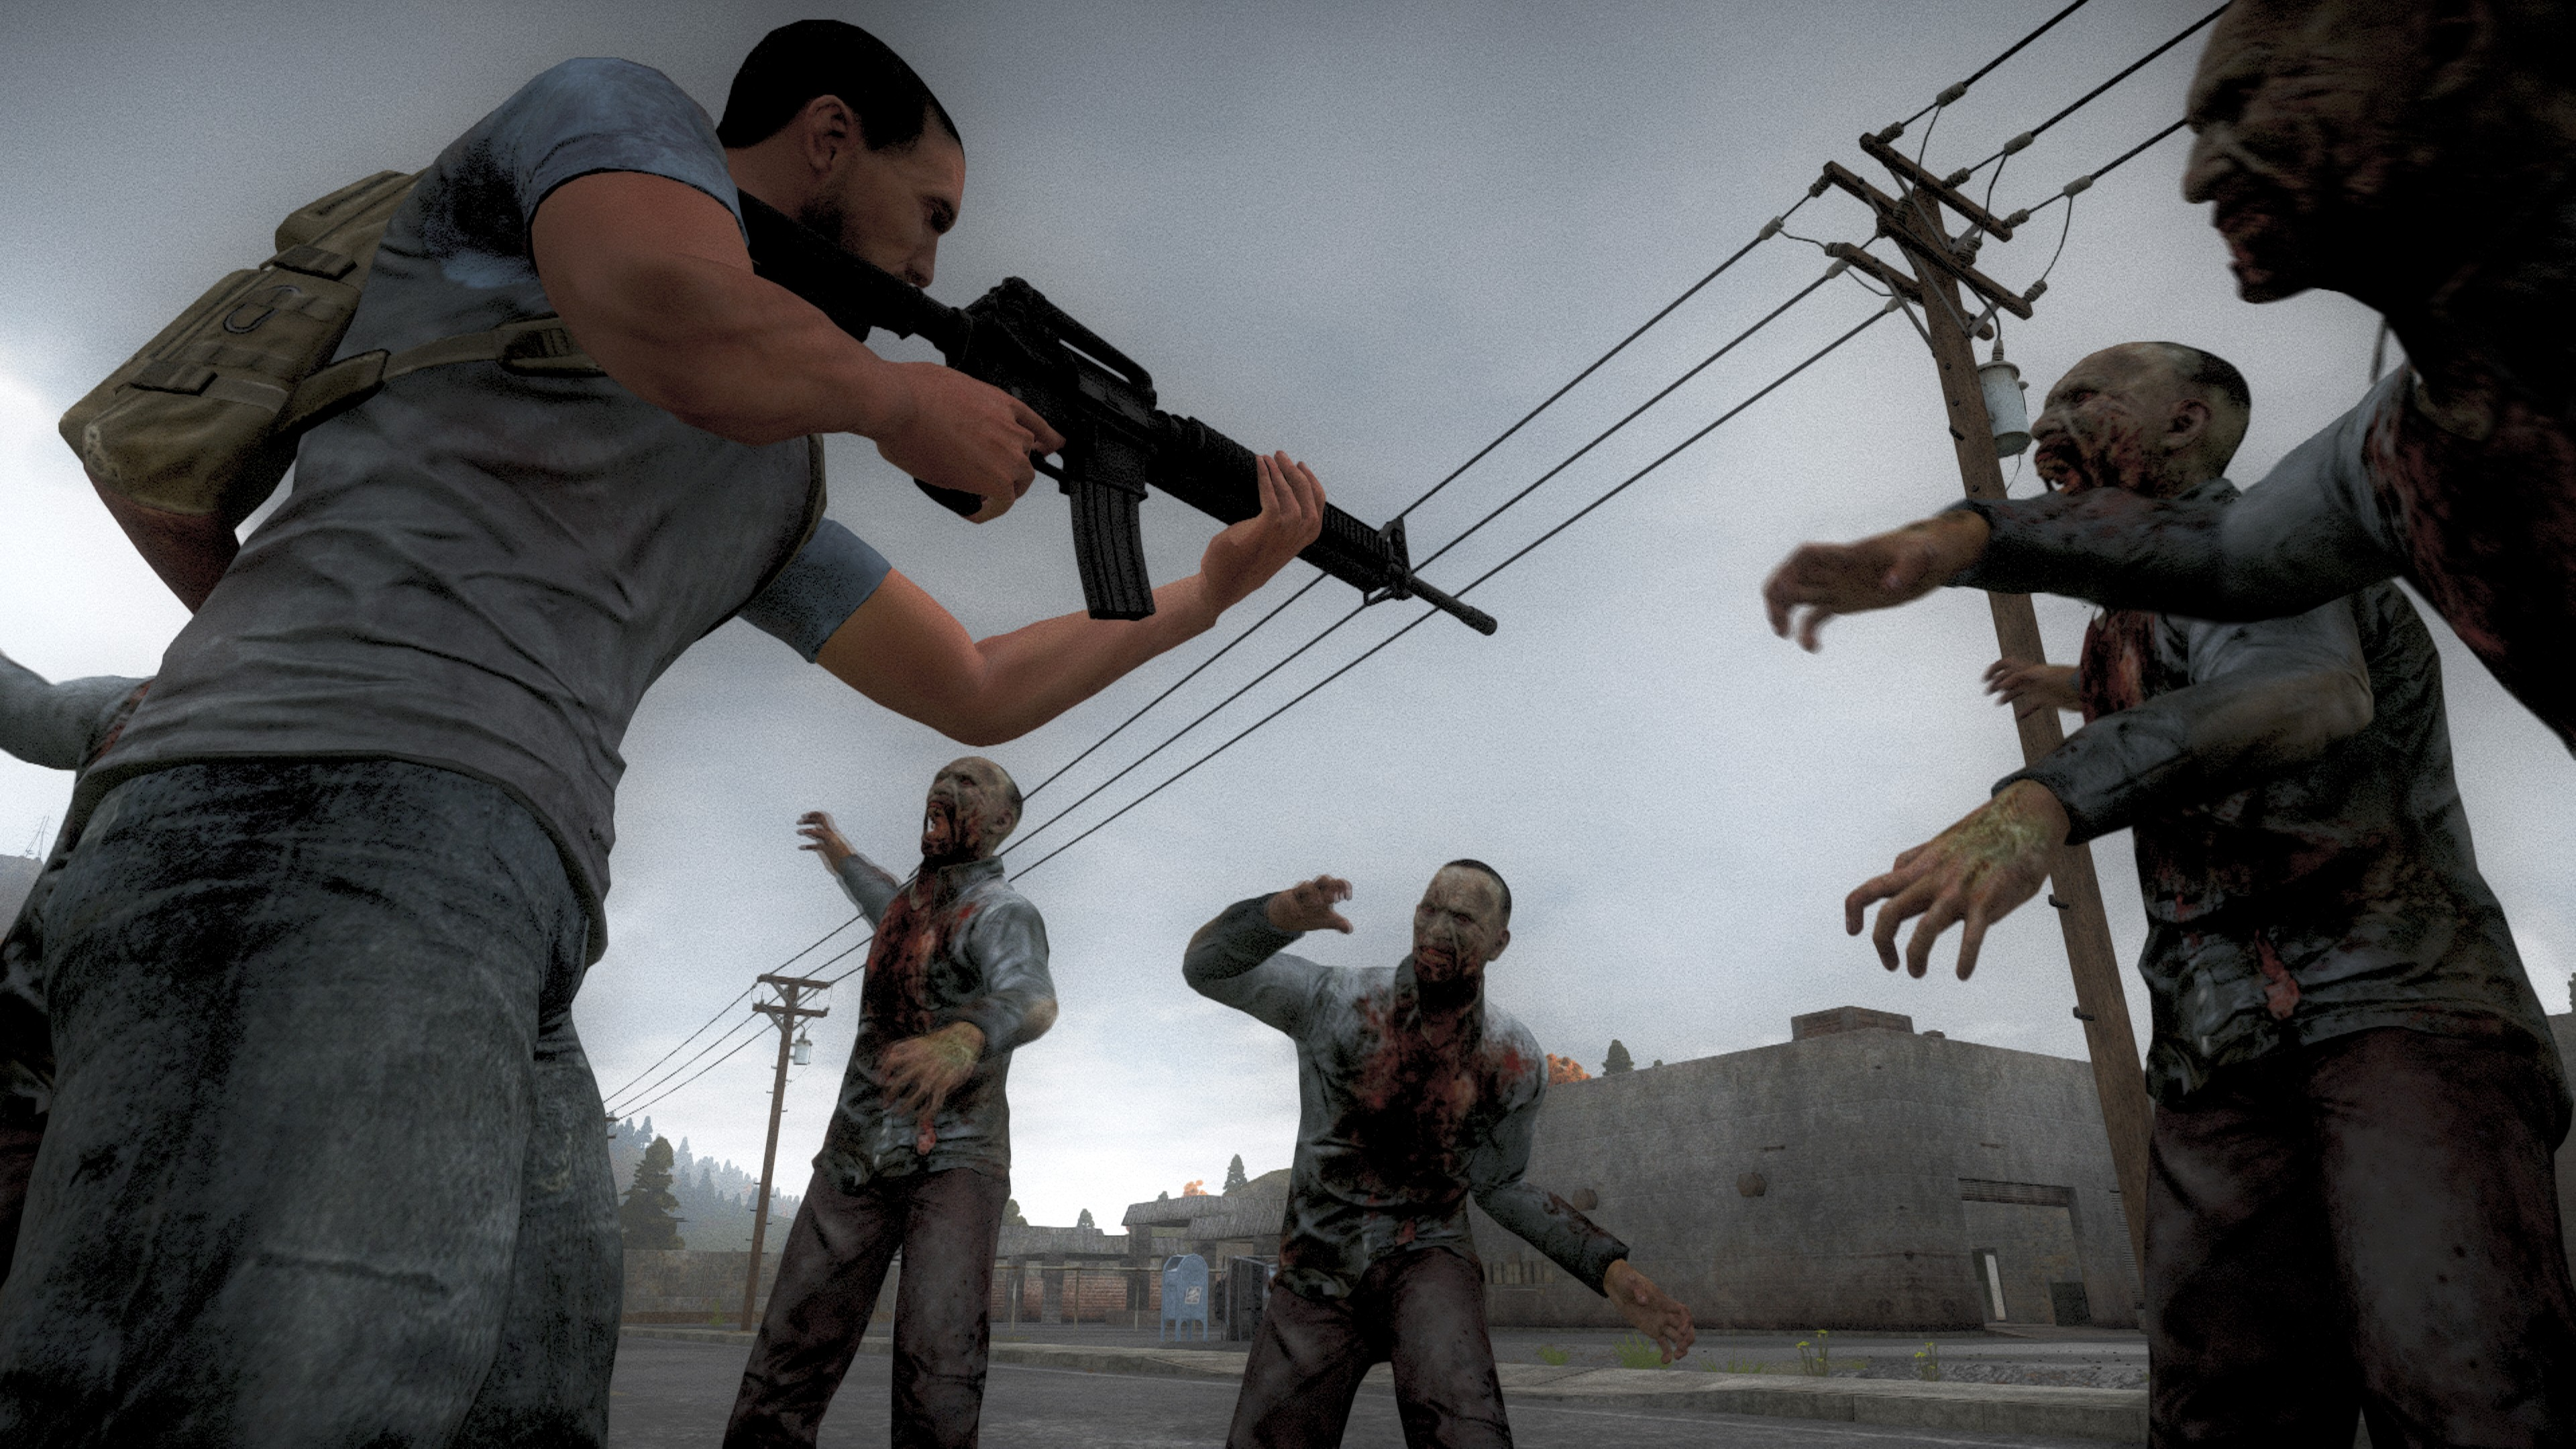 H1Z1-Early-Access-Now-Live-and-It-s-Pay-to-Win-Despite-Previous-Claims-470177-4.jpg